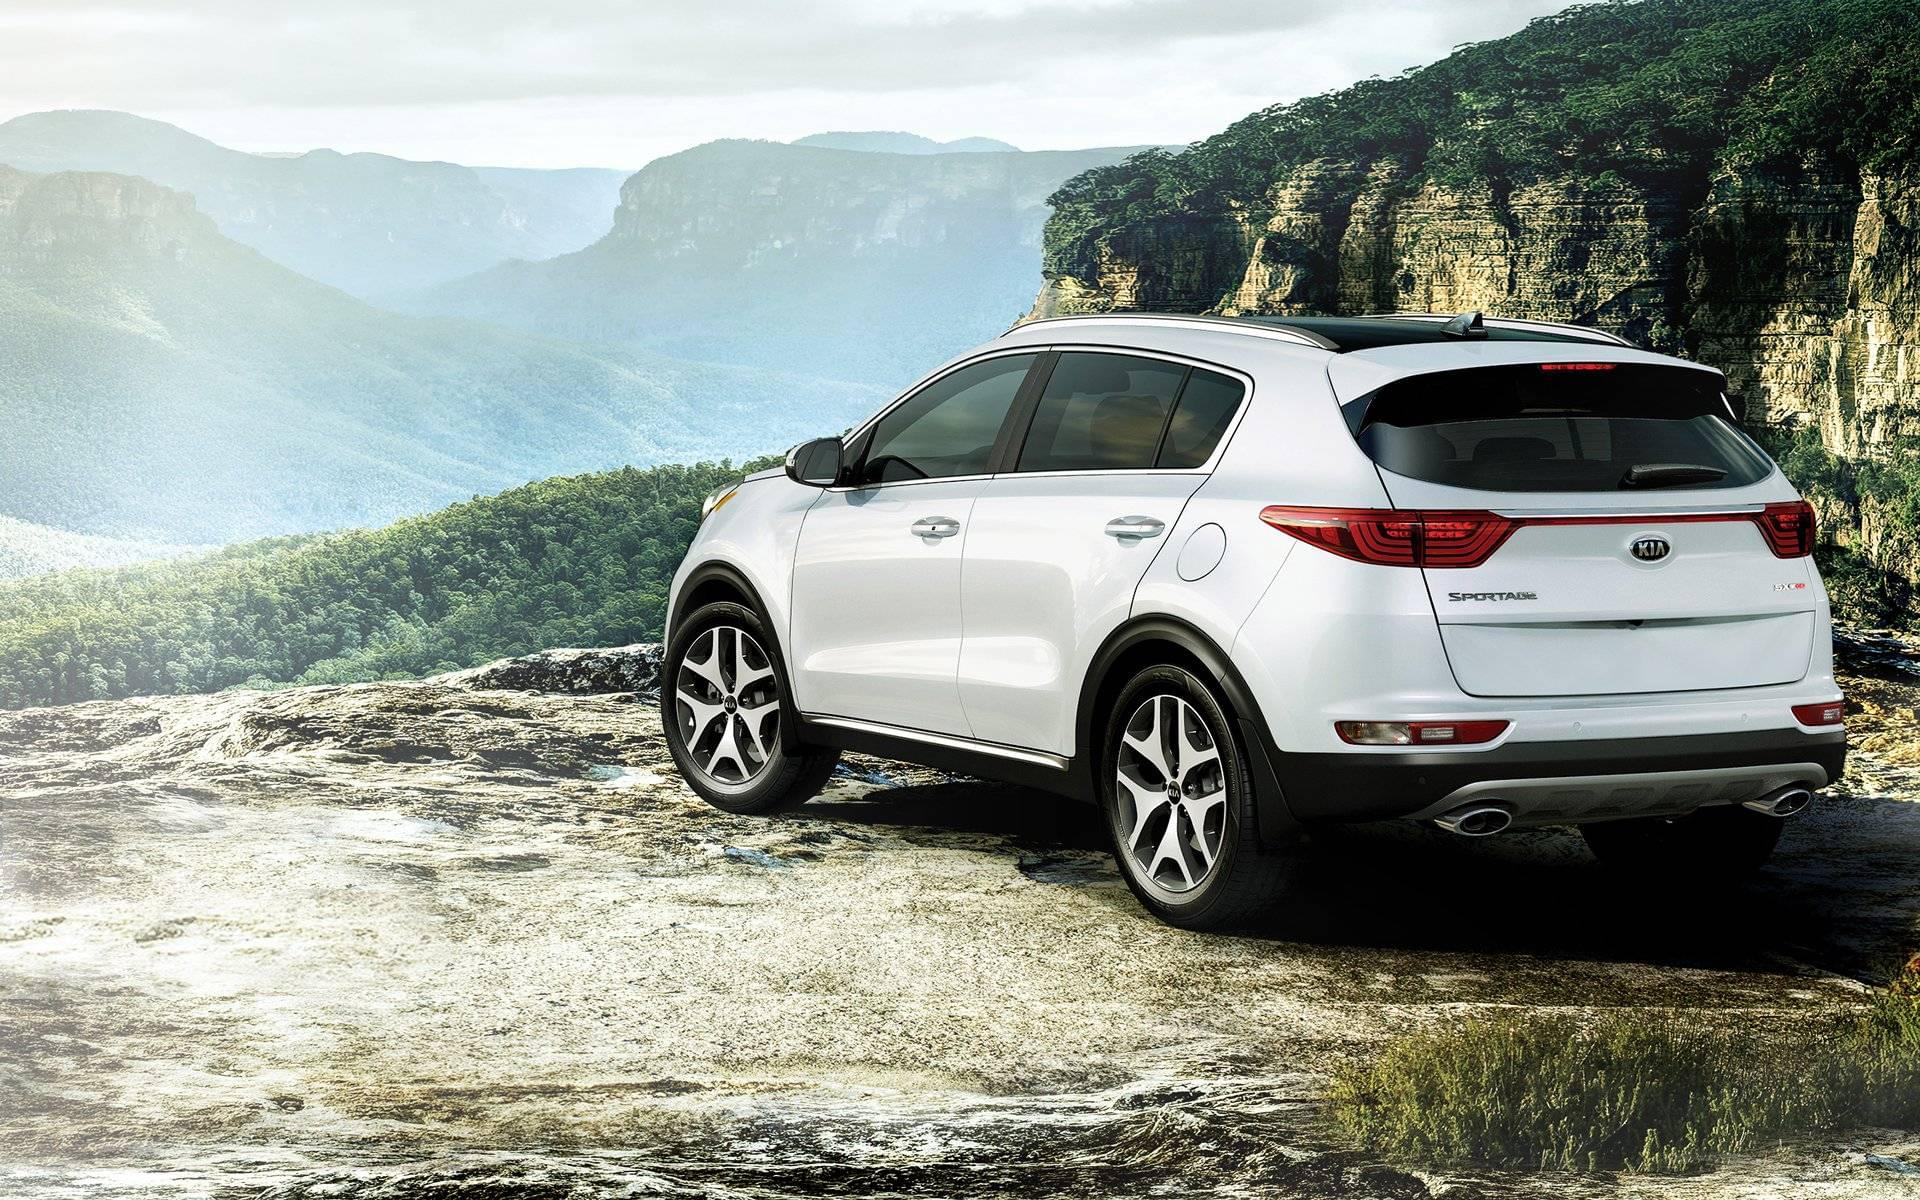 Background Sportage 2017 Exterior Overview-kia-1920x-jpg